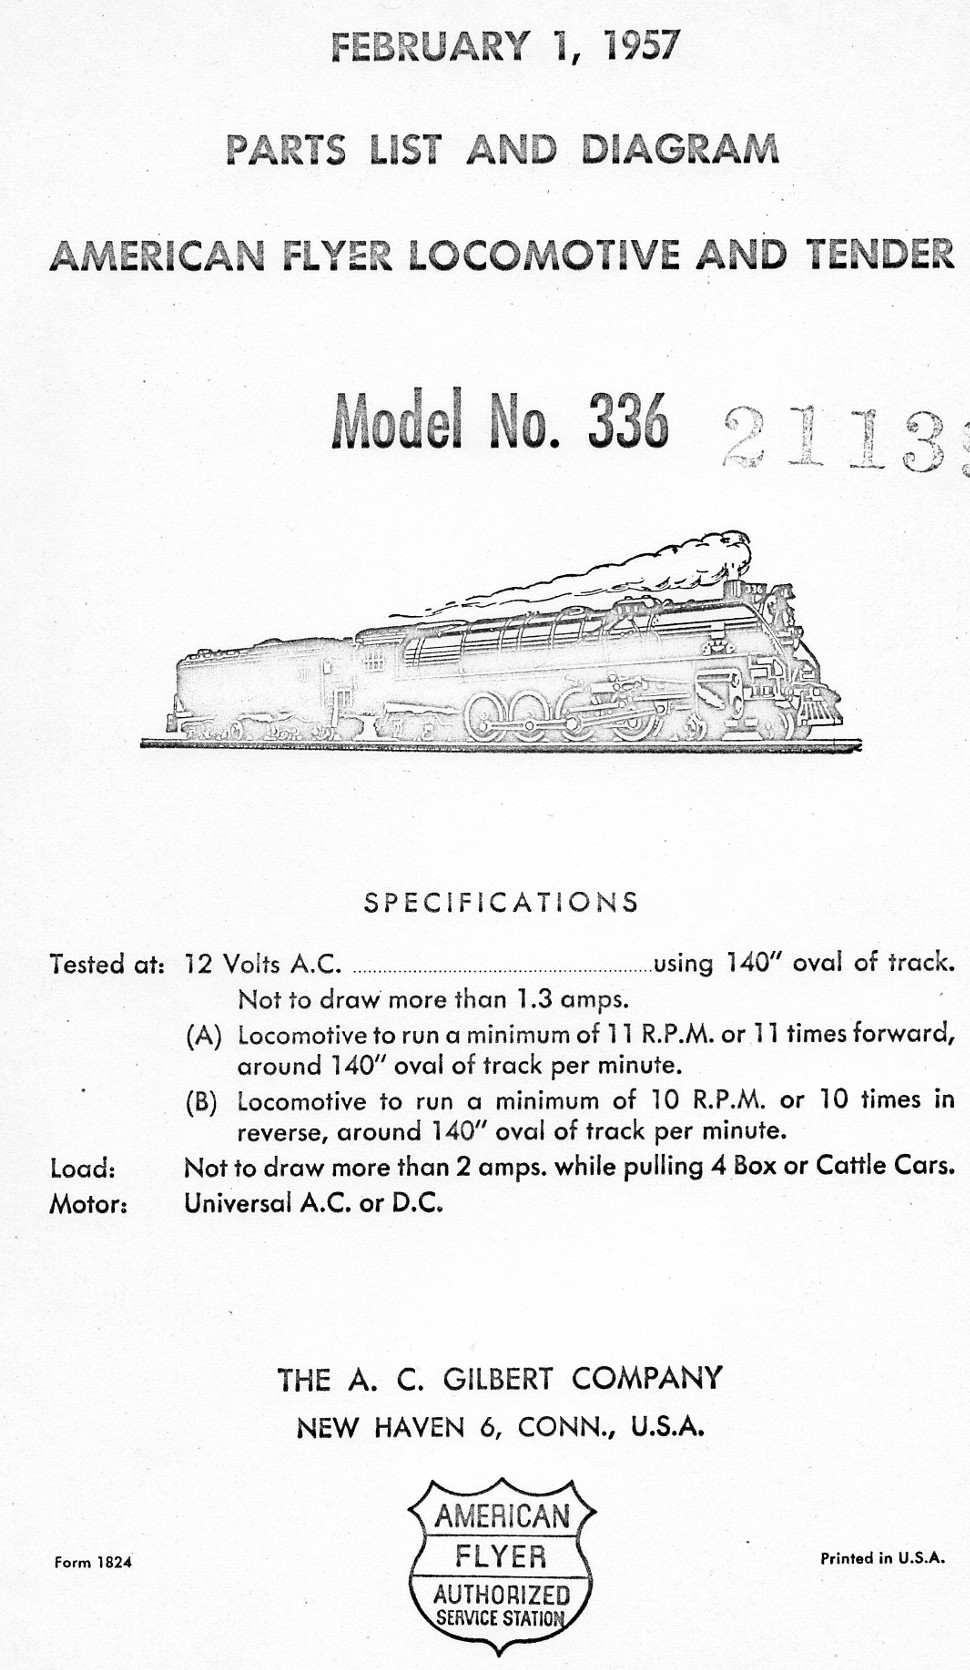 American Flyer Locomotive & Tender 336 Parts List and Diagram - Page 1